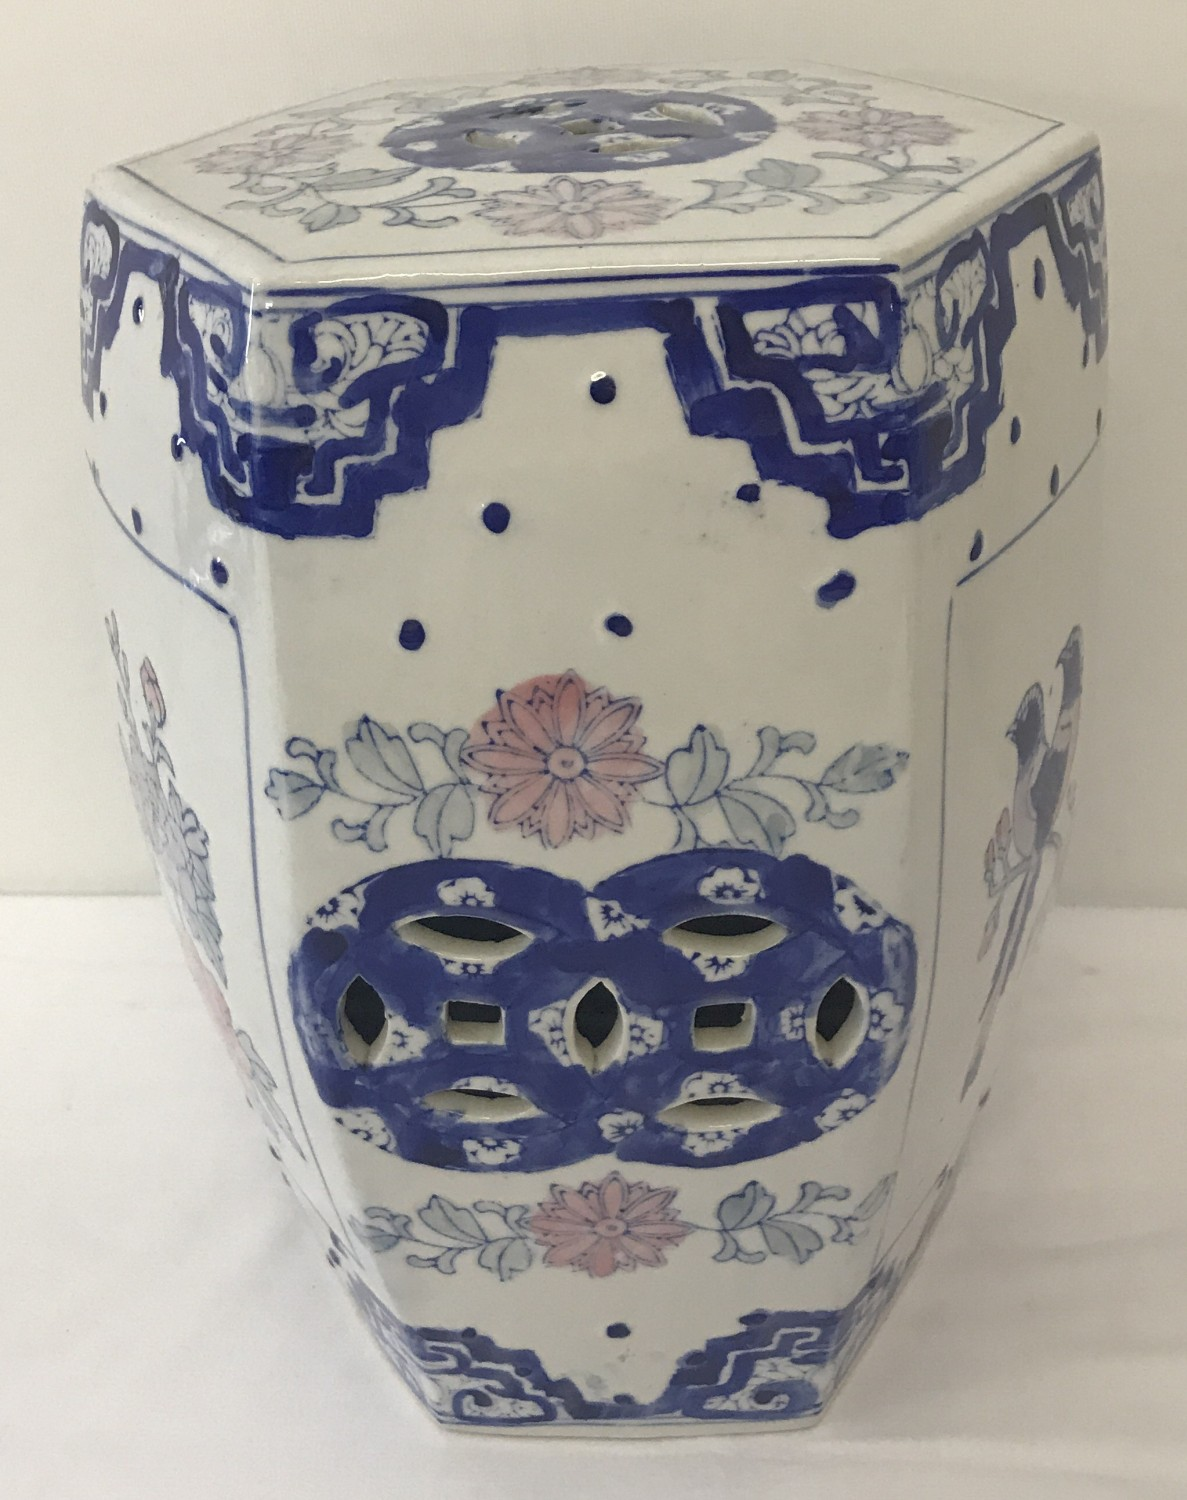 Lot 76 - A Chinese hexagonal ceramic stool with pierced detail to sides and top.